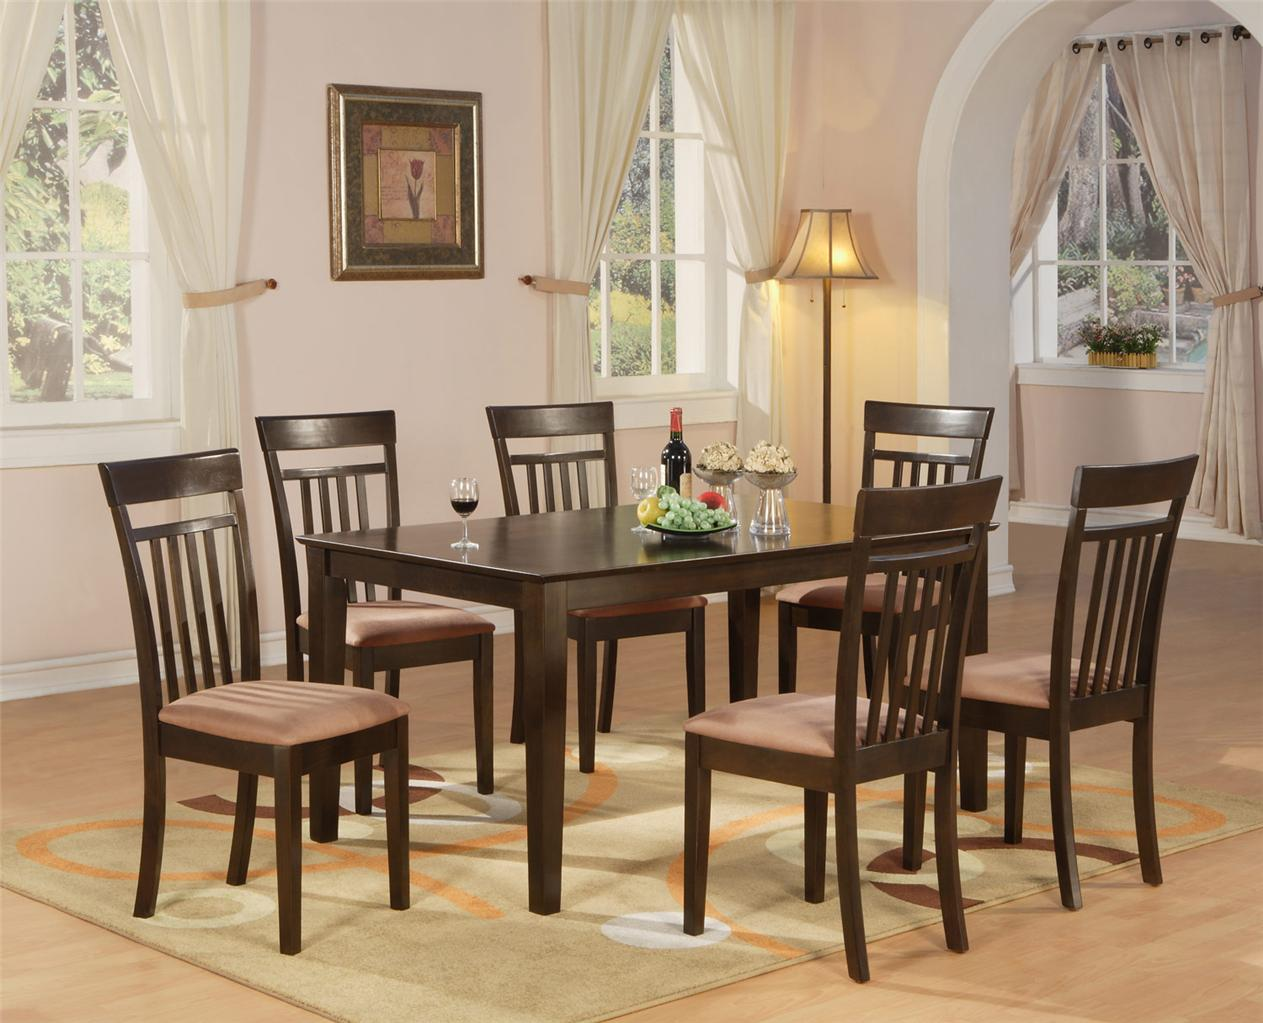 Kitchen Dinette Sets Of 7 Pc Dining Room Dinette Kitchen Set Table And 6 Chairs Ebay